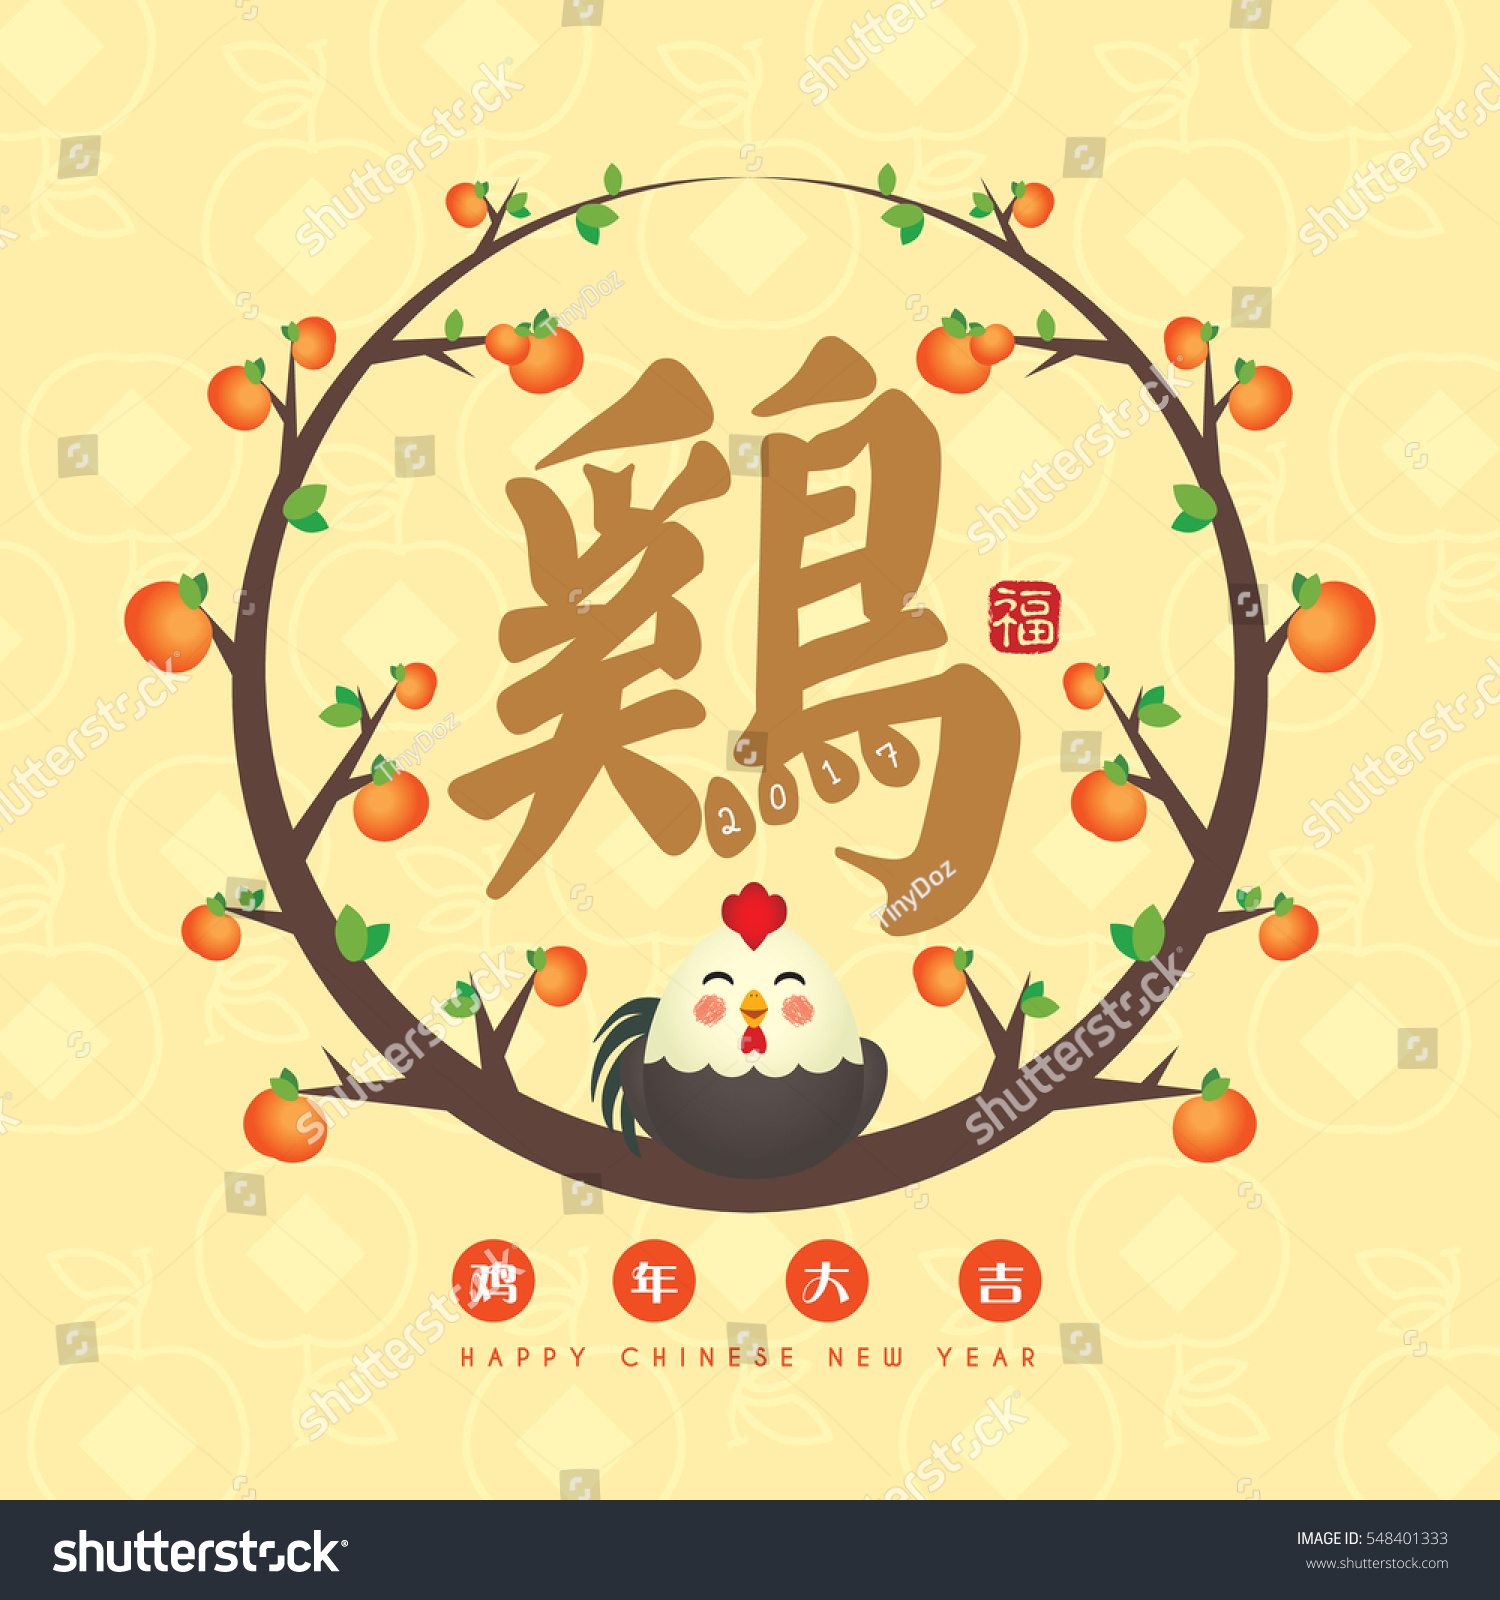 2017 Chinese New Year Greeting Card Of Cartoon Chicken With Citrus